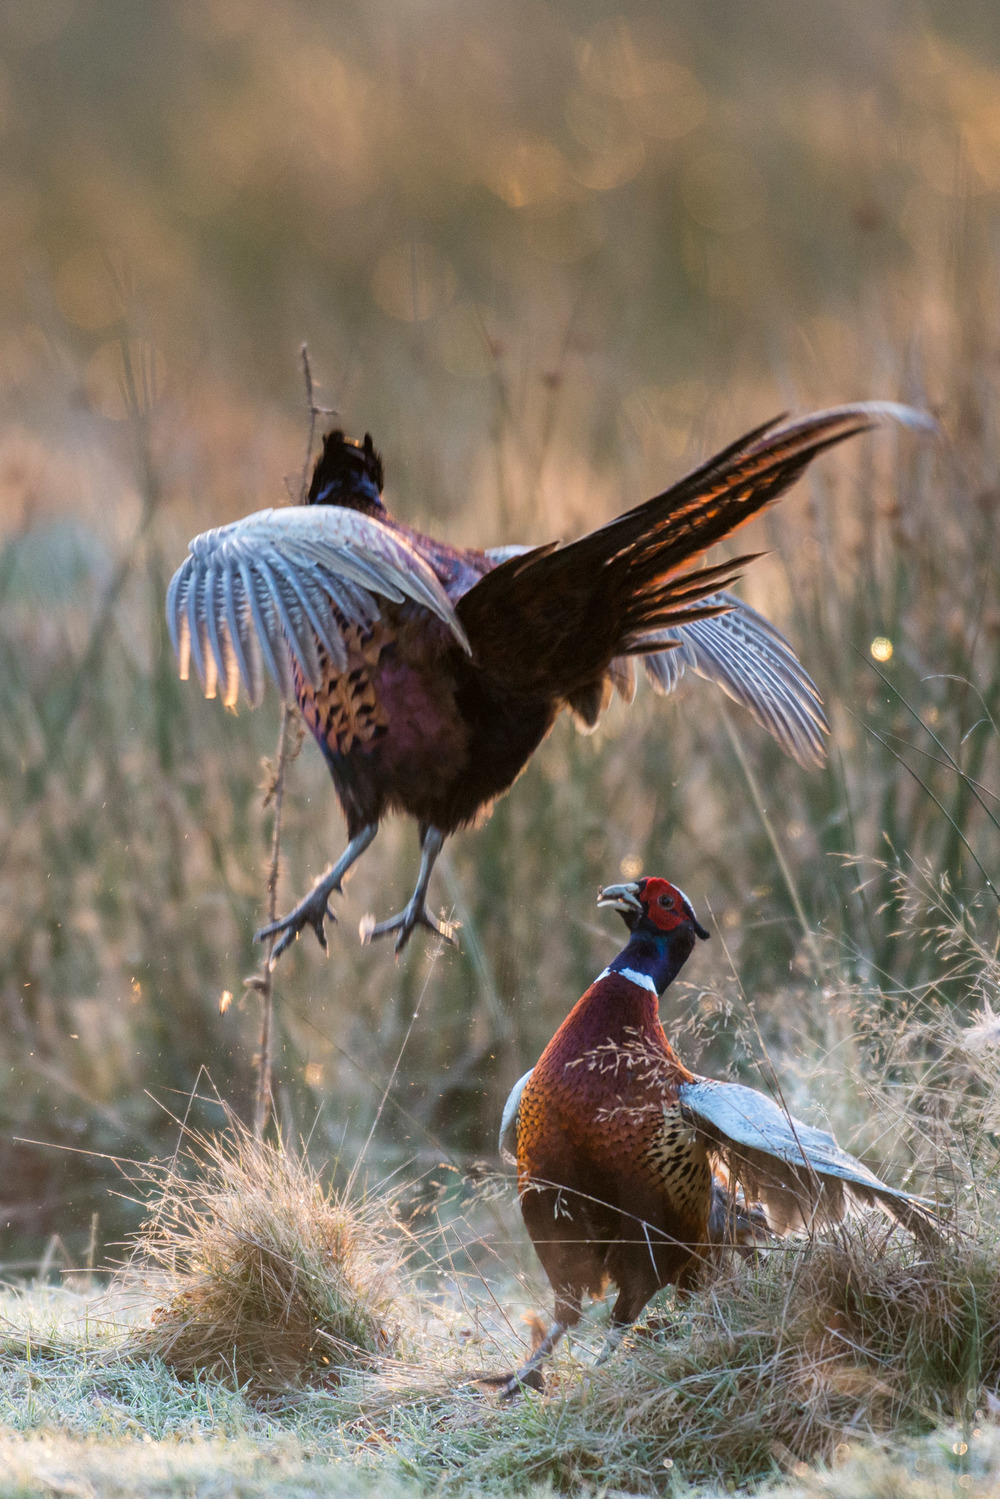 Pheasant cocks fighting at dawn, Ashdown Forest, Sussex Weald, England